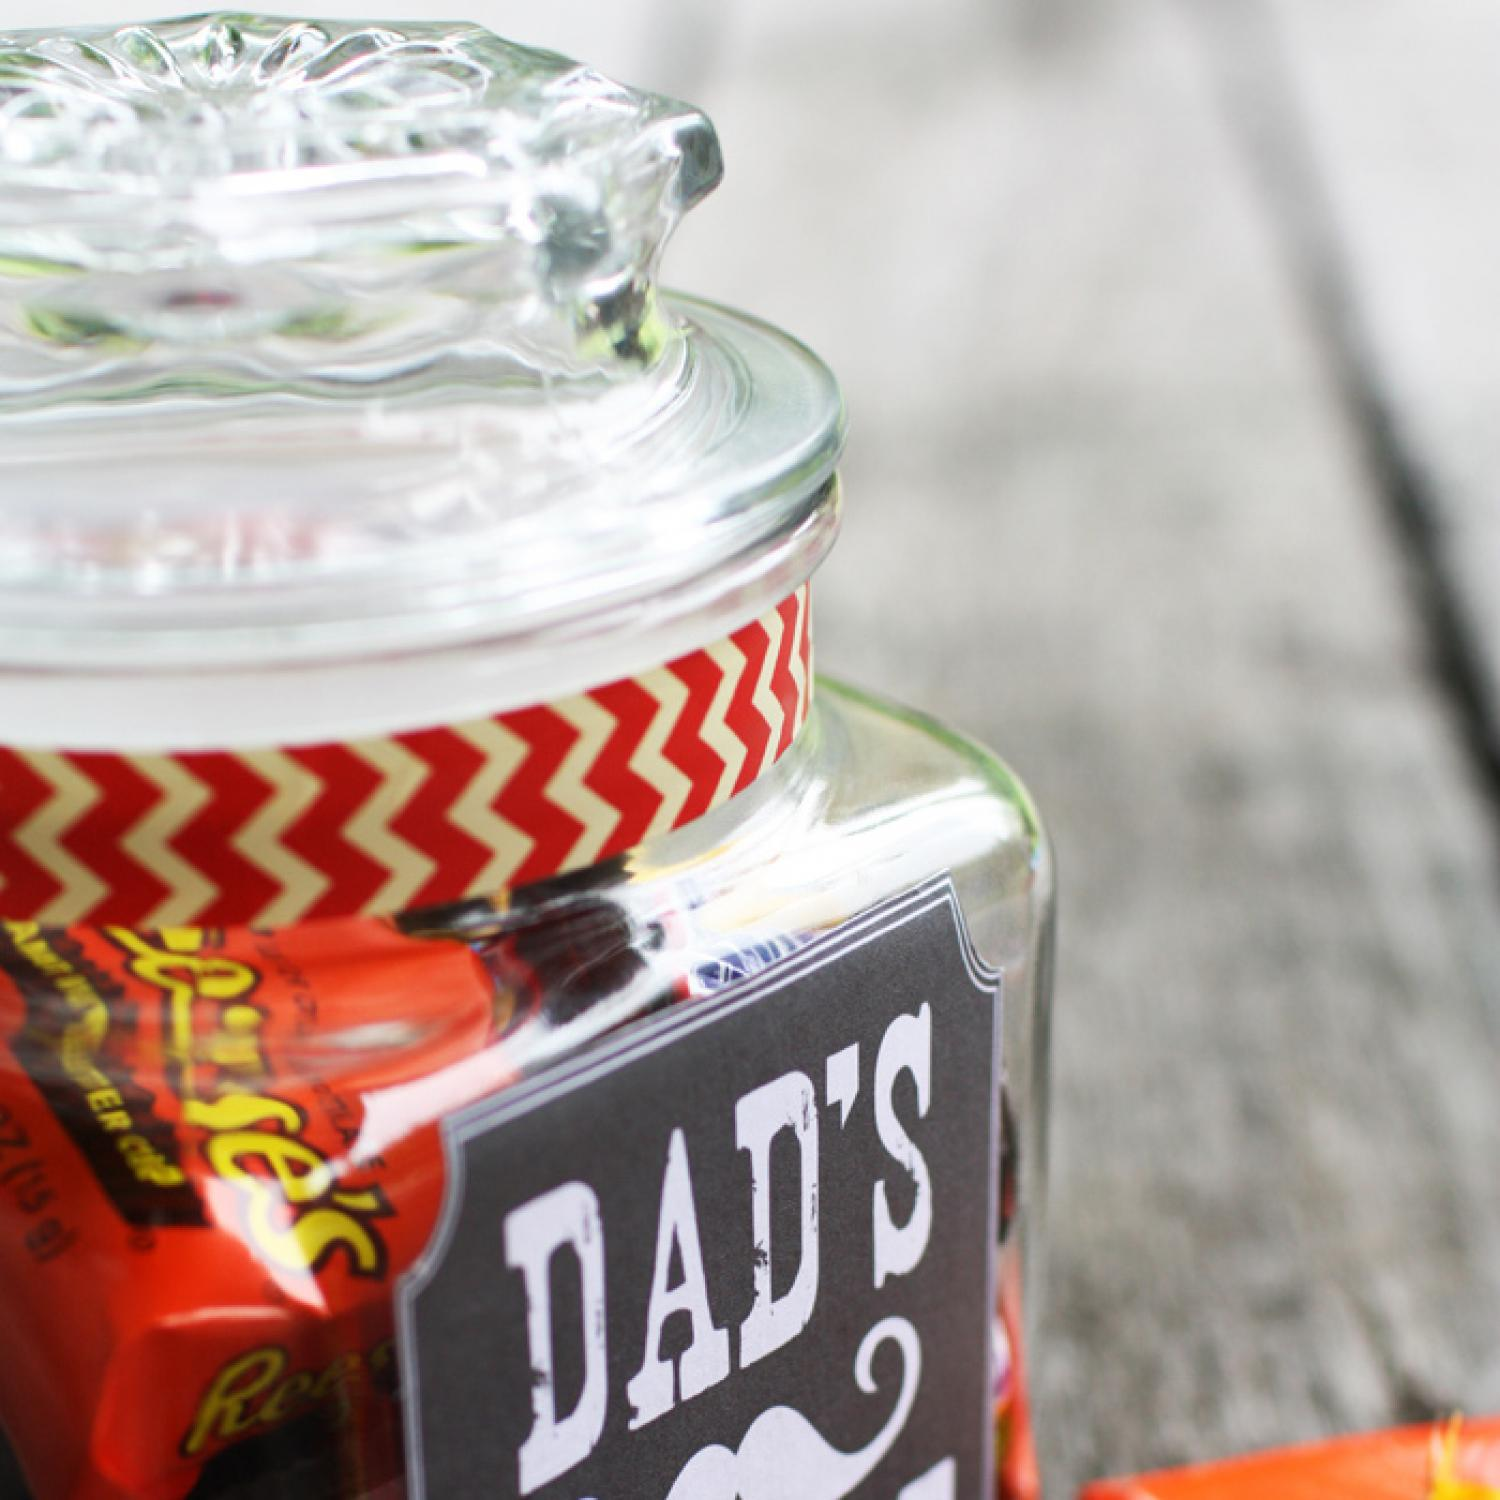 Diy Mothers Day Gifts From Baby 10 Homemade Father 39s Day Gifts That Dads Will Love Parenting